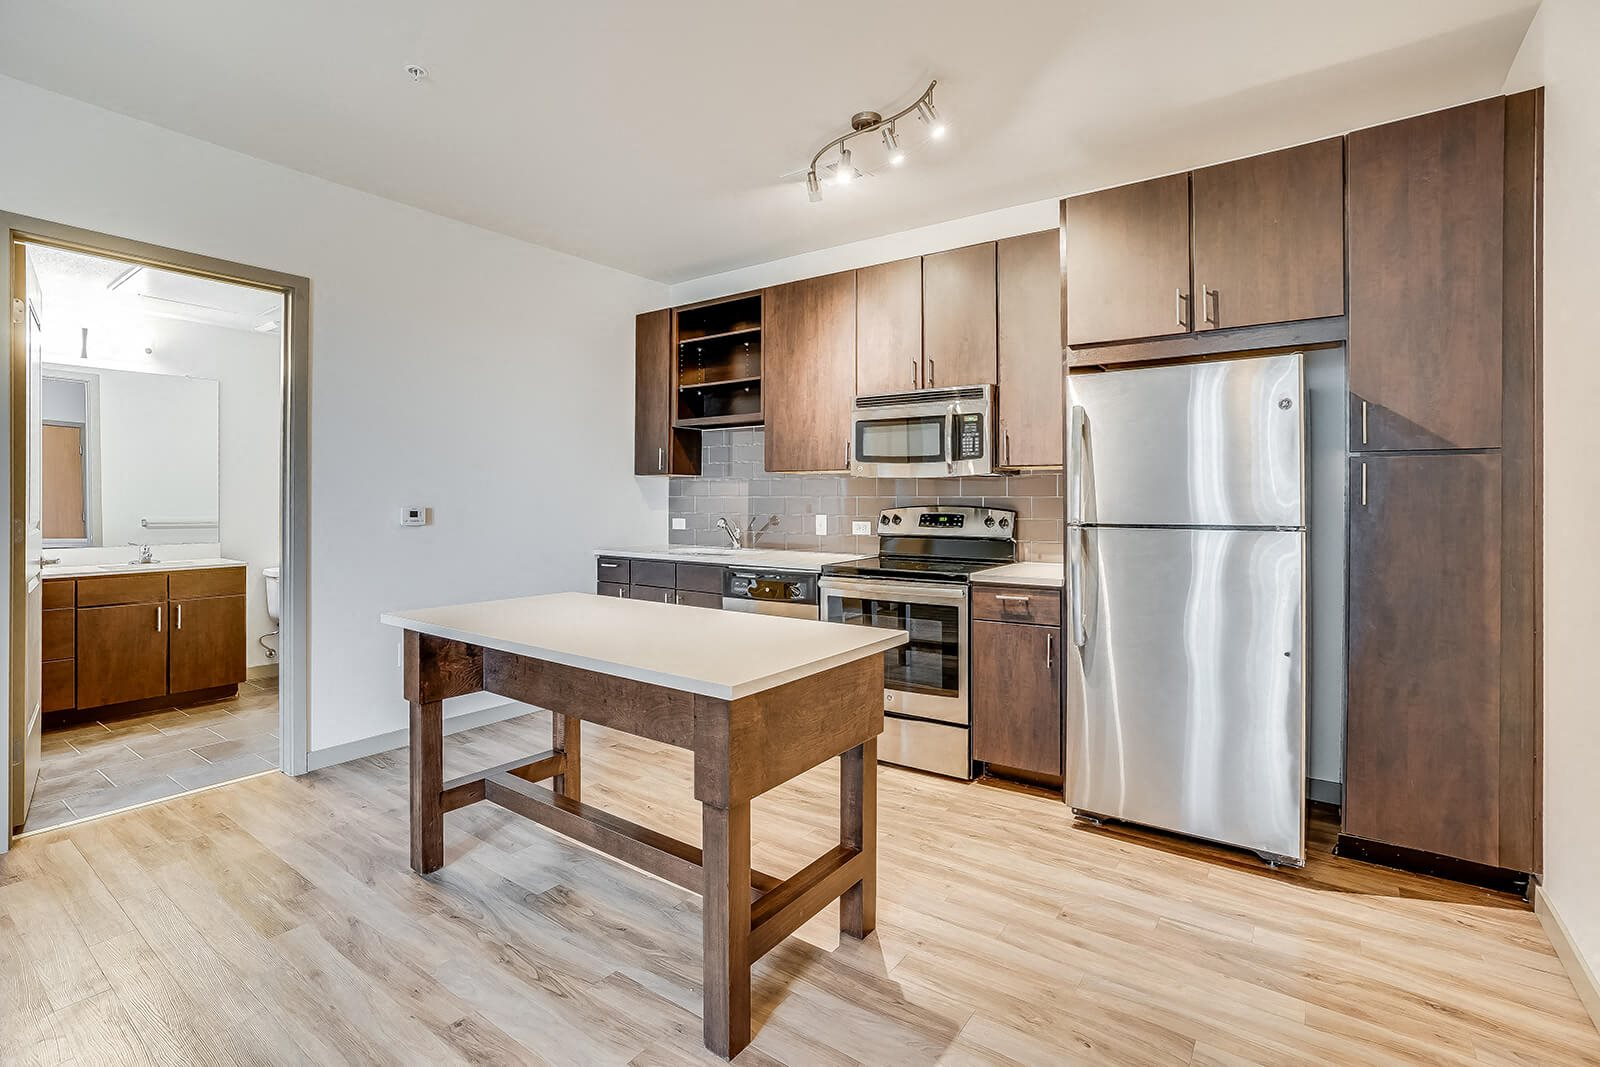 Chef-Inspired Kitchen Islands in Select Apartments at The Casey, 2100 Delgany, Denver